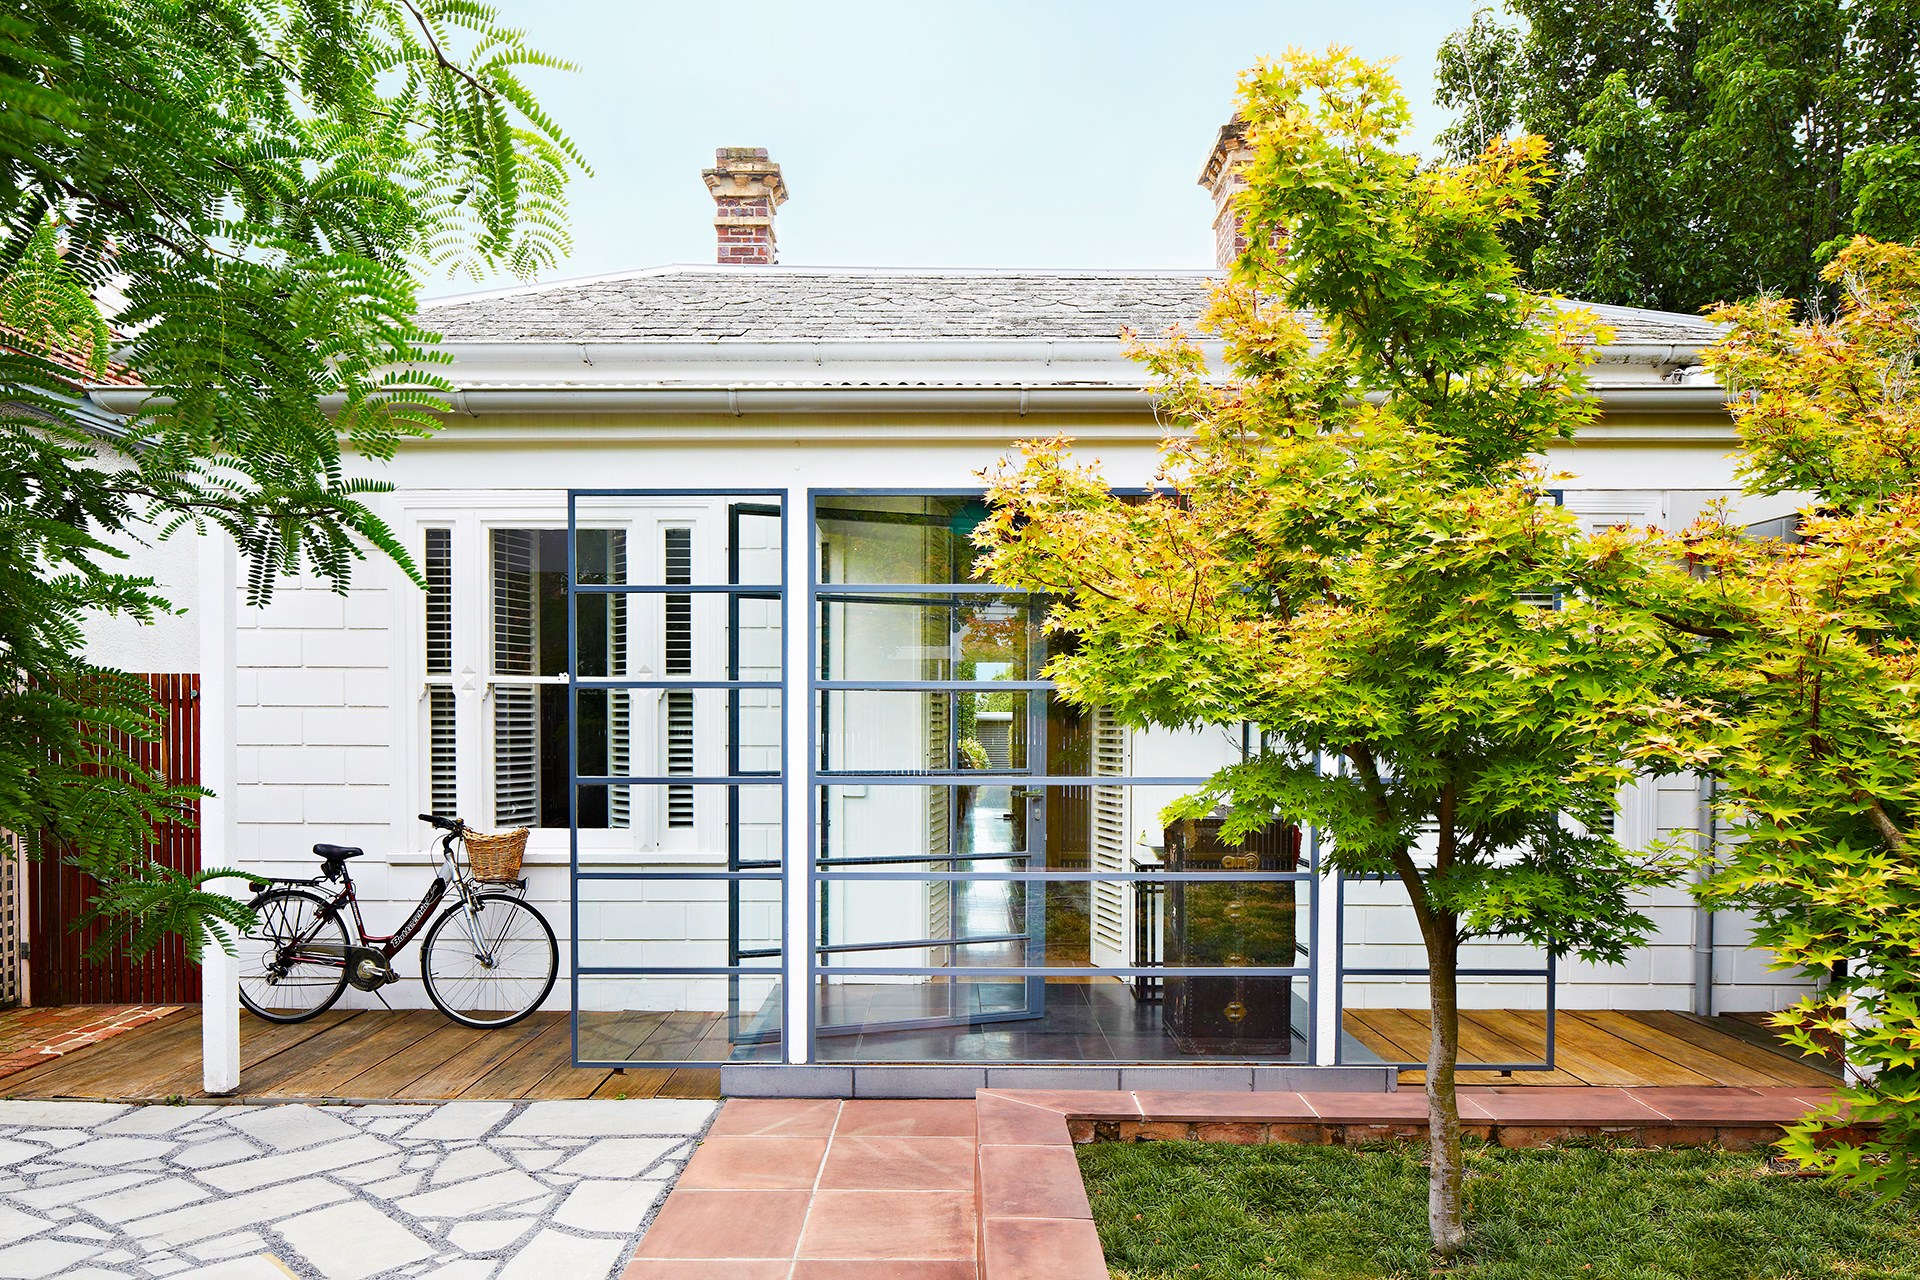 """Buying a home for the first time? Read our list of [do's and dont's for first-home buyers >](https://www.homestolove.com.au/take-5-mortage-houses-first-home-buyer-dos-and-donts-3254